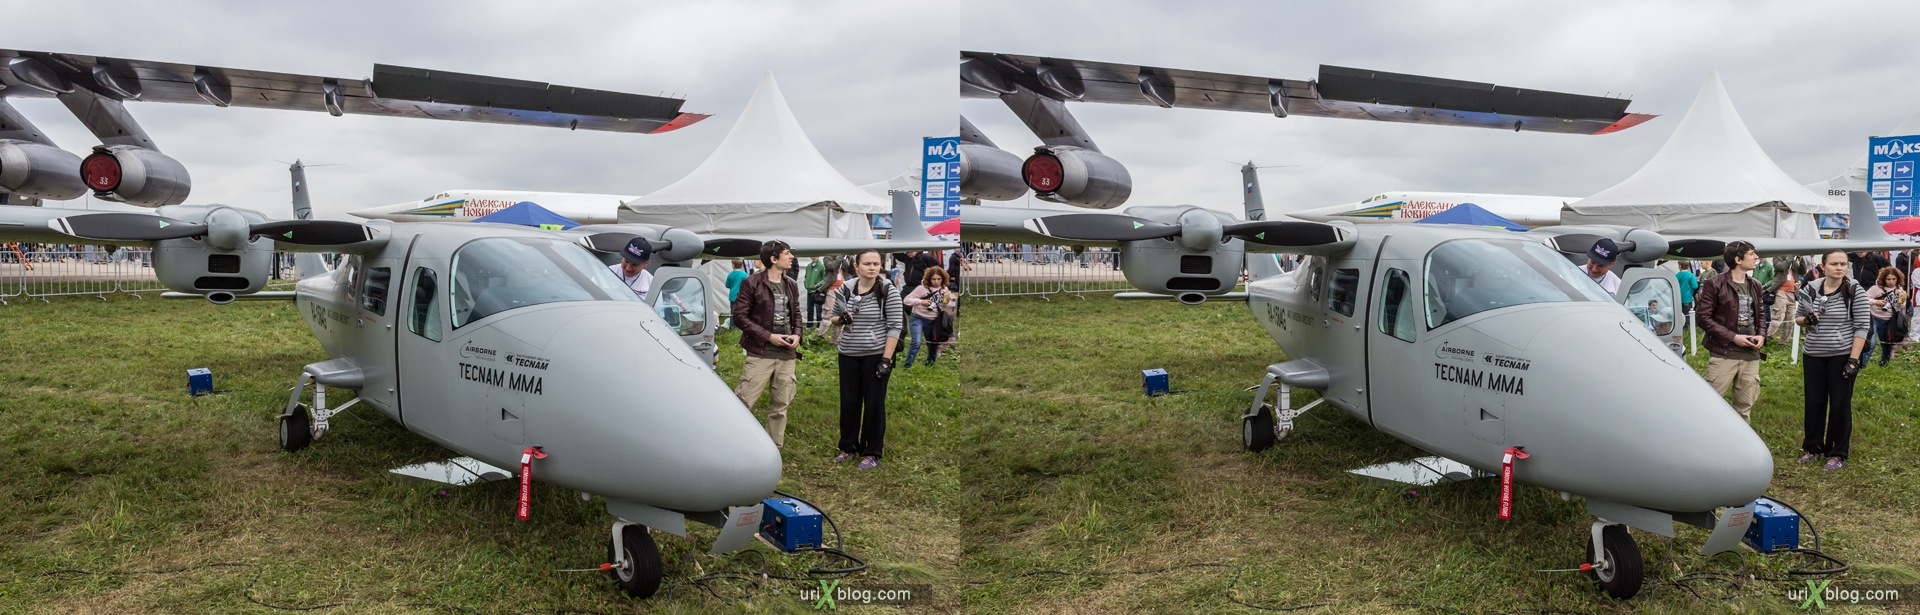 2013, Tecnam P2006 MMA, MAKS, International Aviation and Space Salon, Russia, Ramenskoye airfield, airplane, 3D, stereo pair, cross-eyed, crossview, cross view stereo pair, stereoscopic